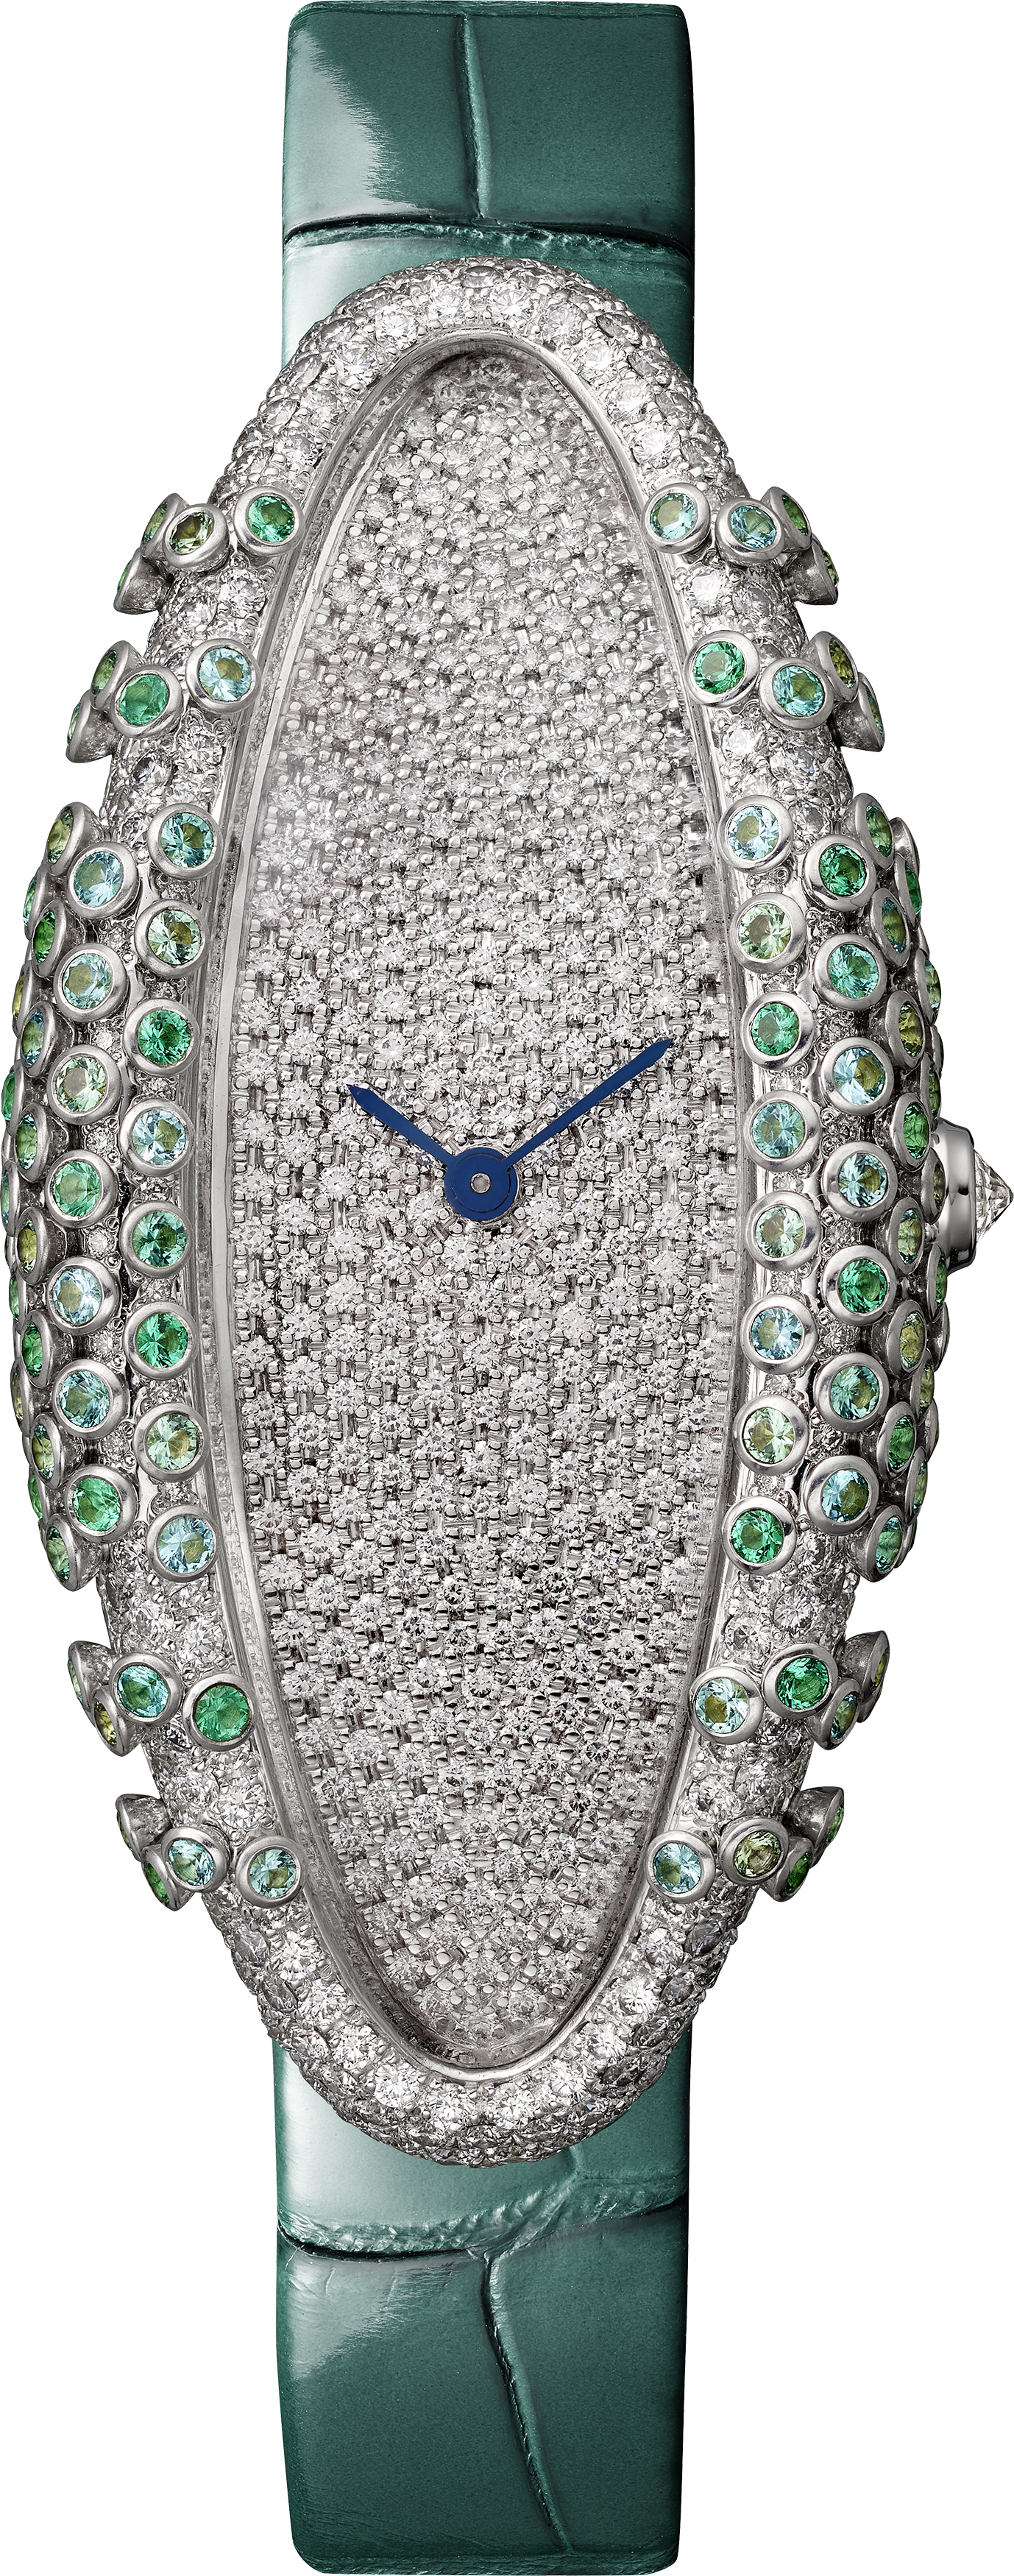 Cartier Libre Baignoire Allongée Celadon watch